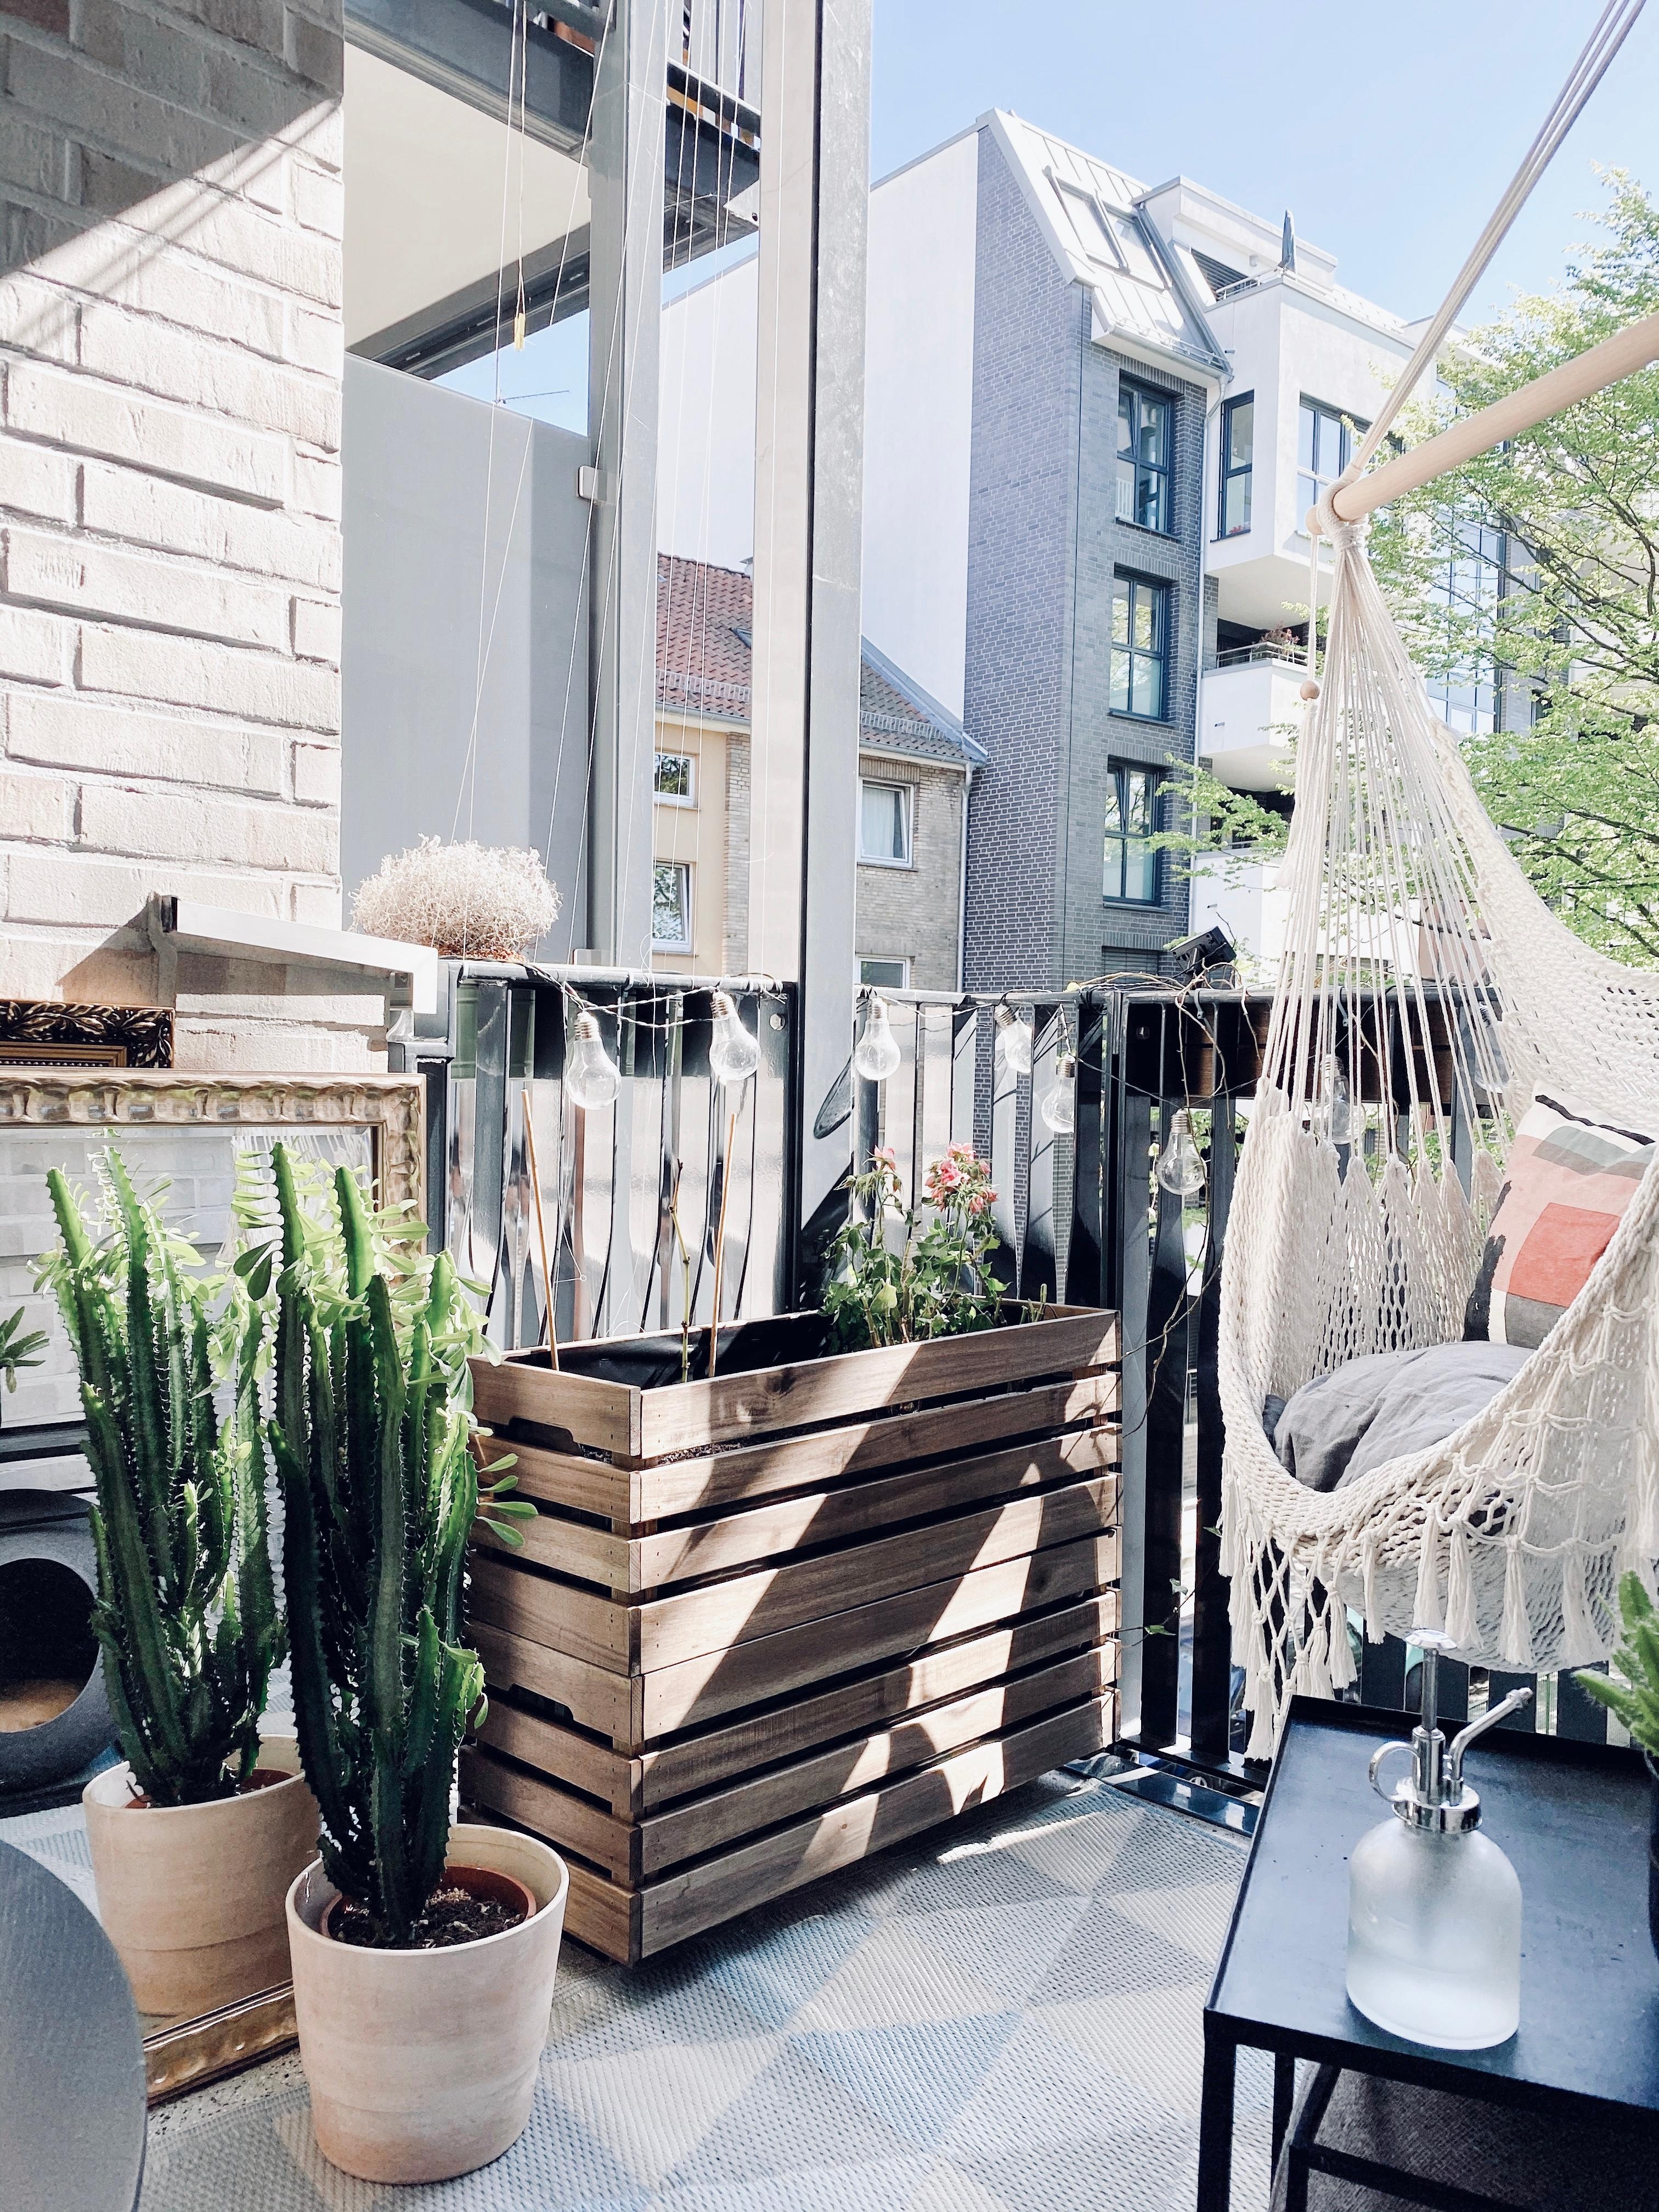 Die plantbox ist ready  balkondiy balcony ikeahack plantbox balkonideen  239841a4 fe10 459e 8f76 6e57ee3f5cb3